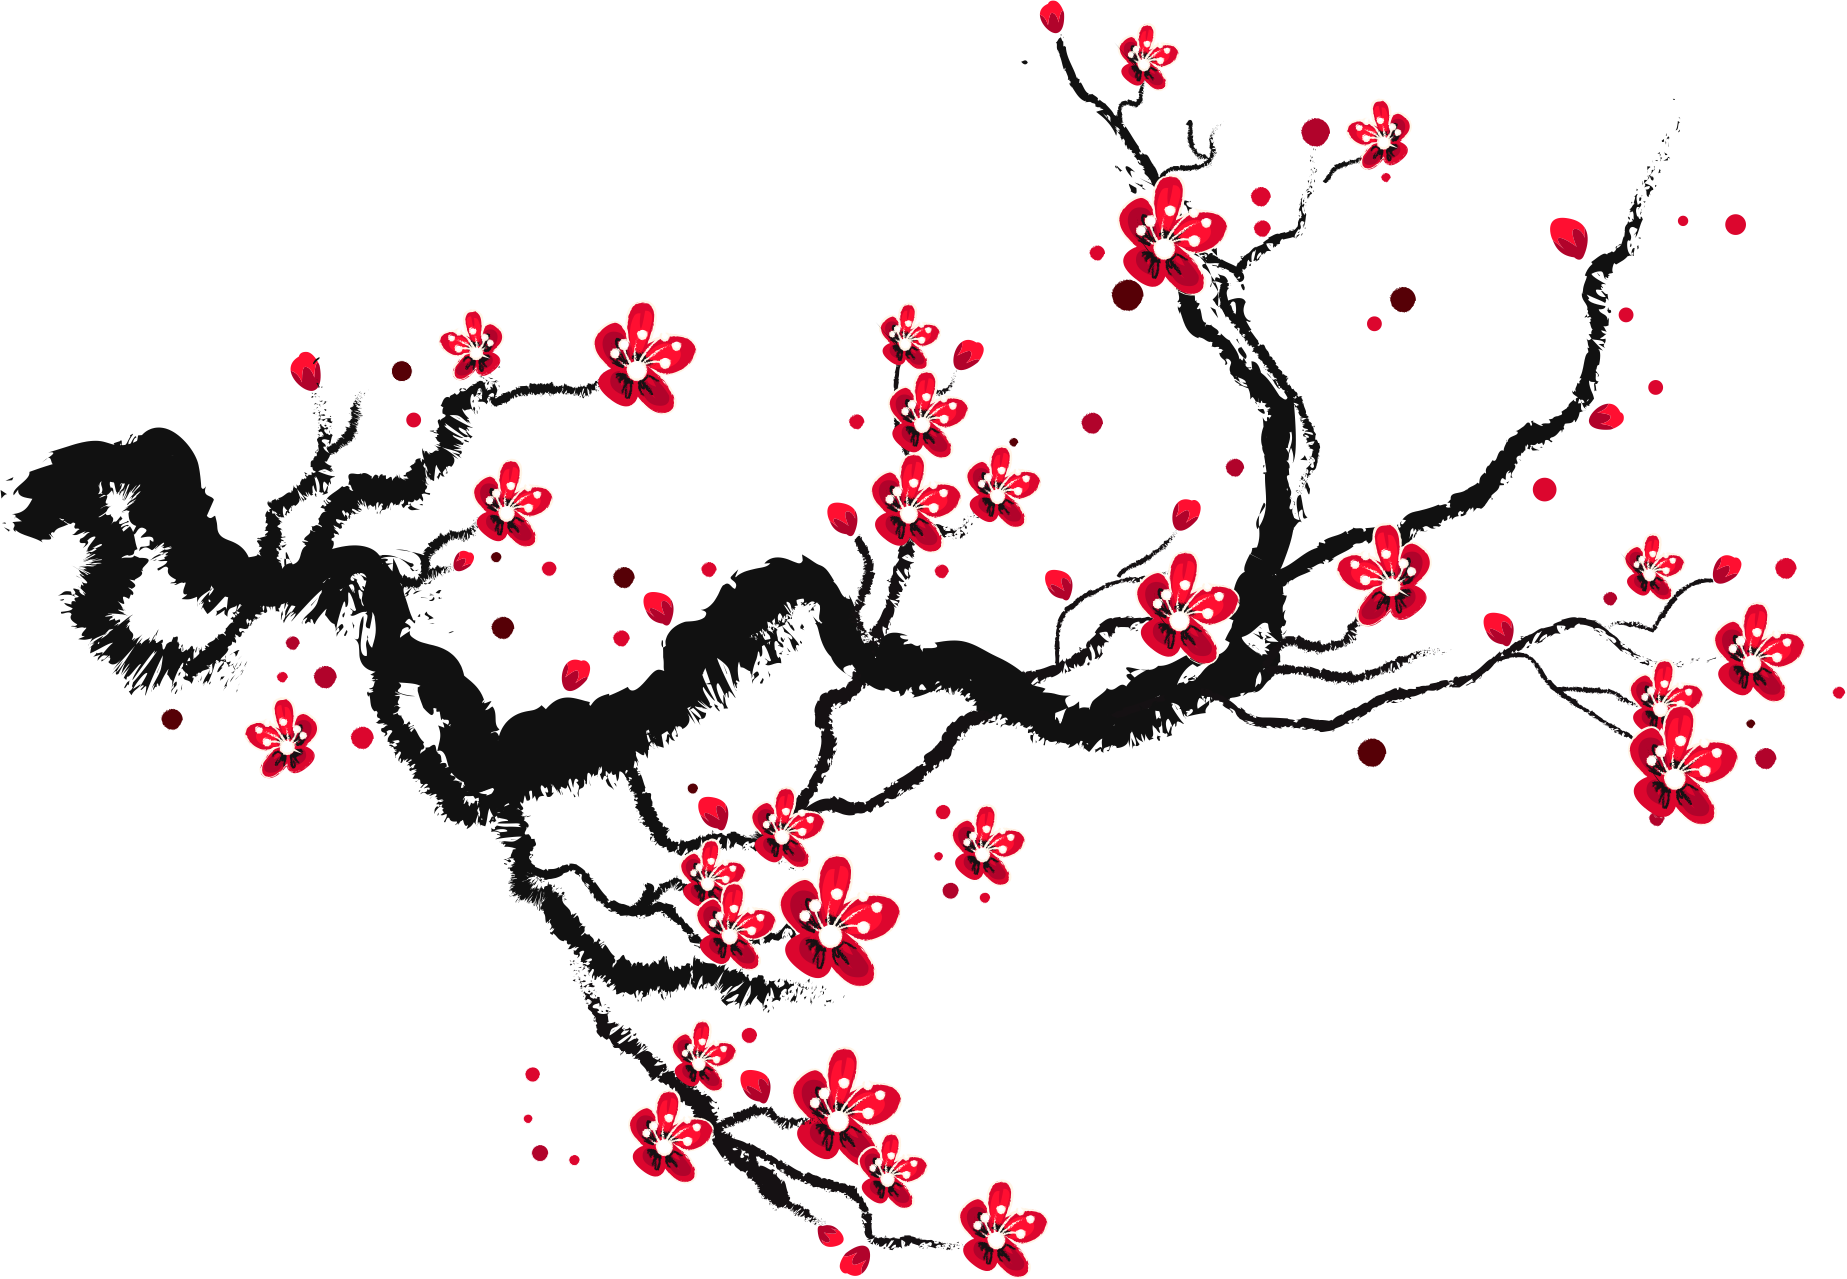 Paper sketch ink blossoms. Blossom drawing cherry clip art black and white download